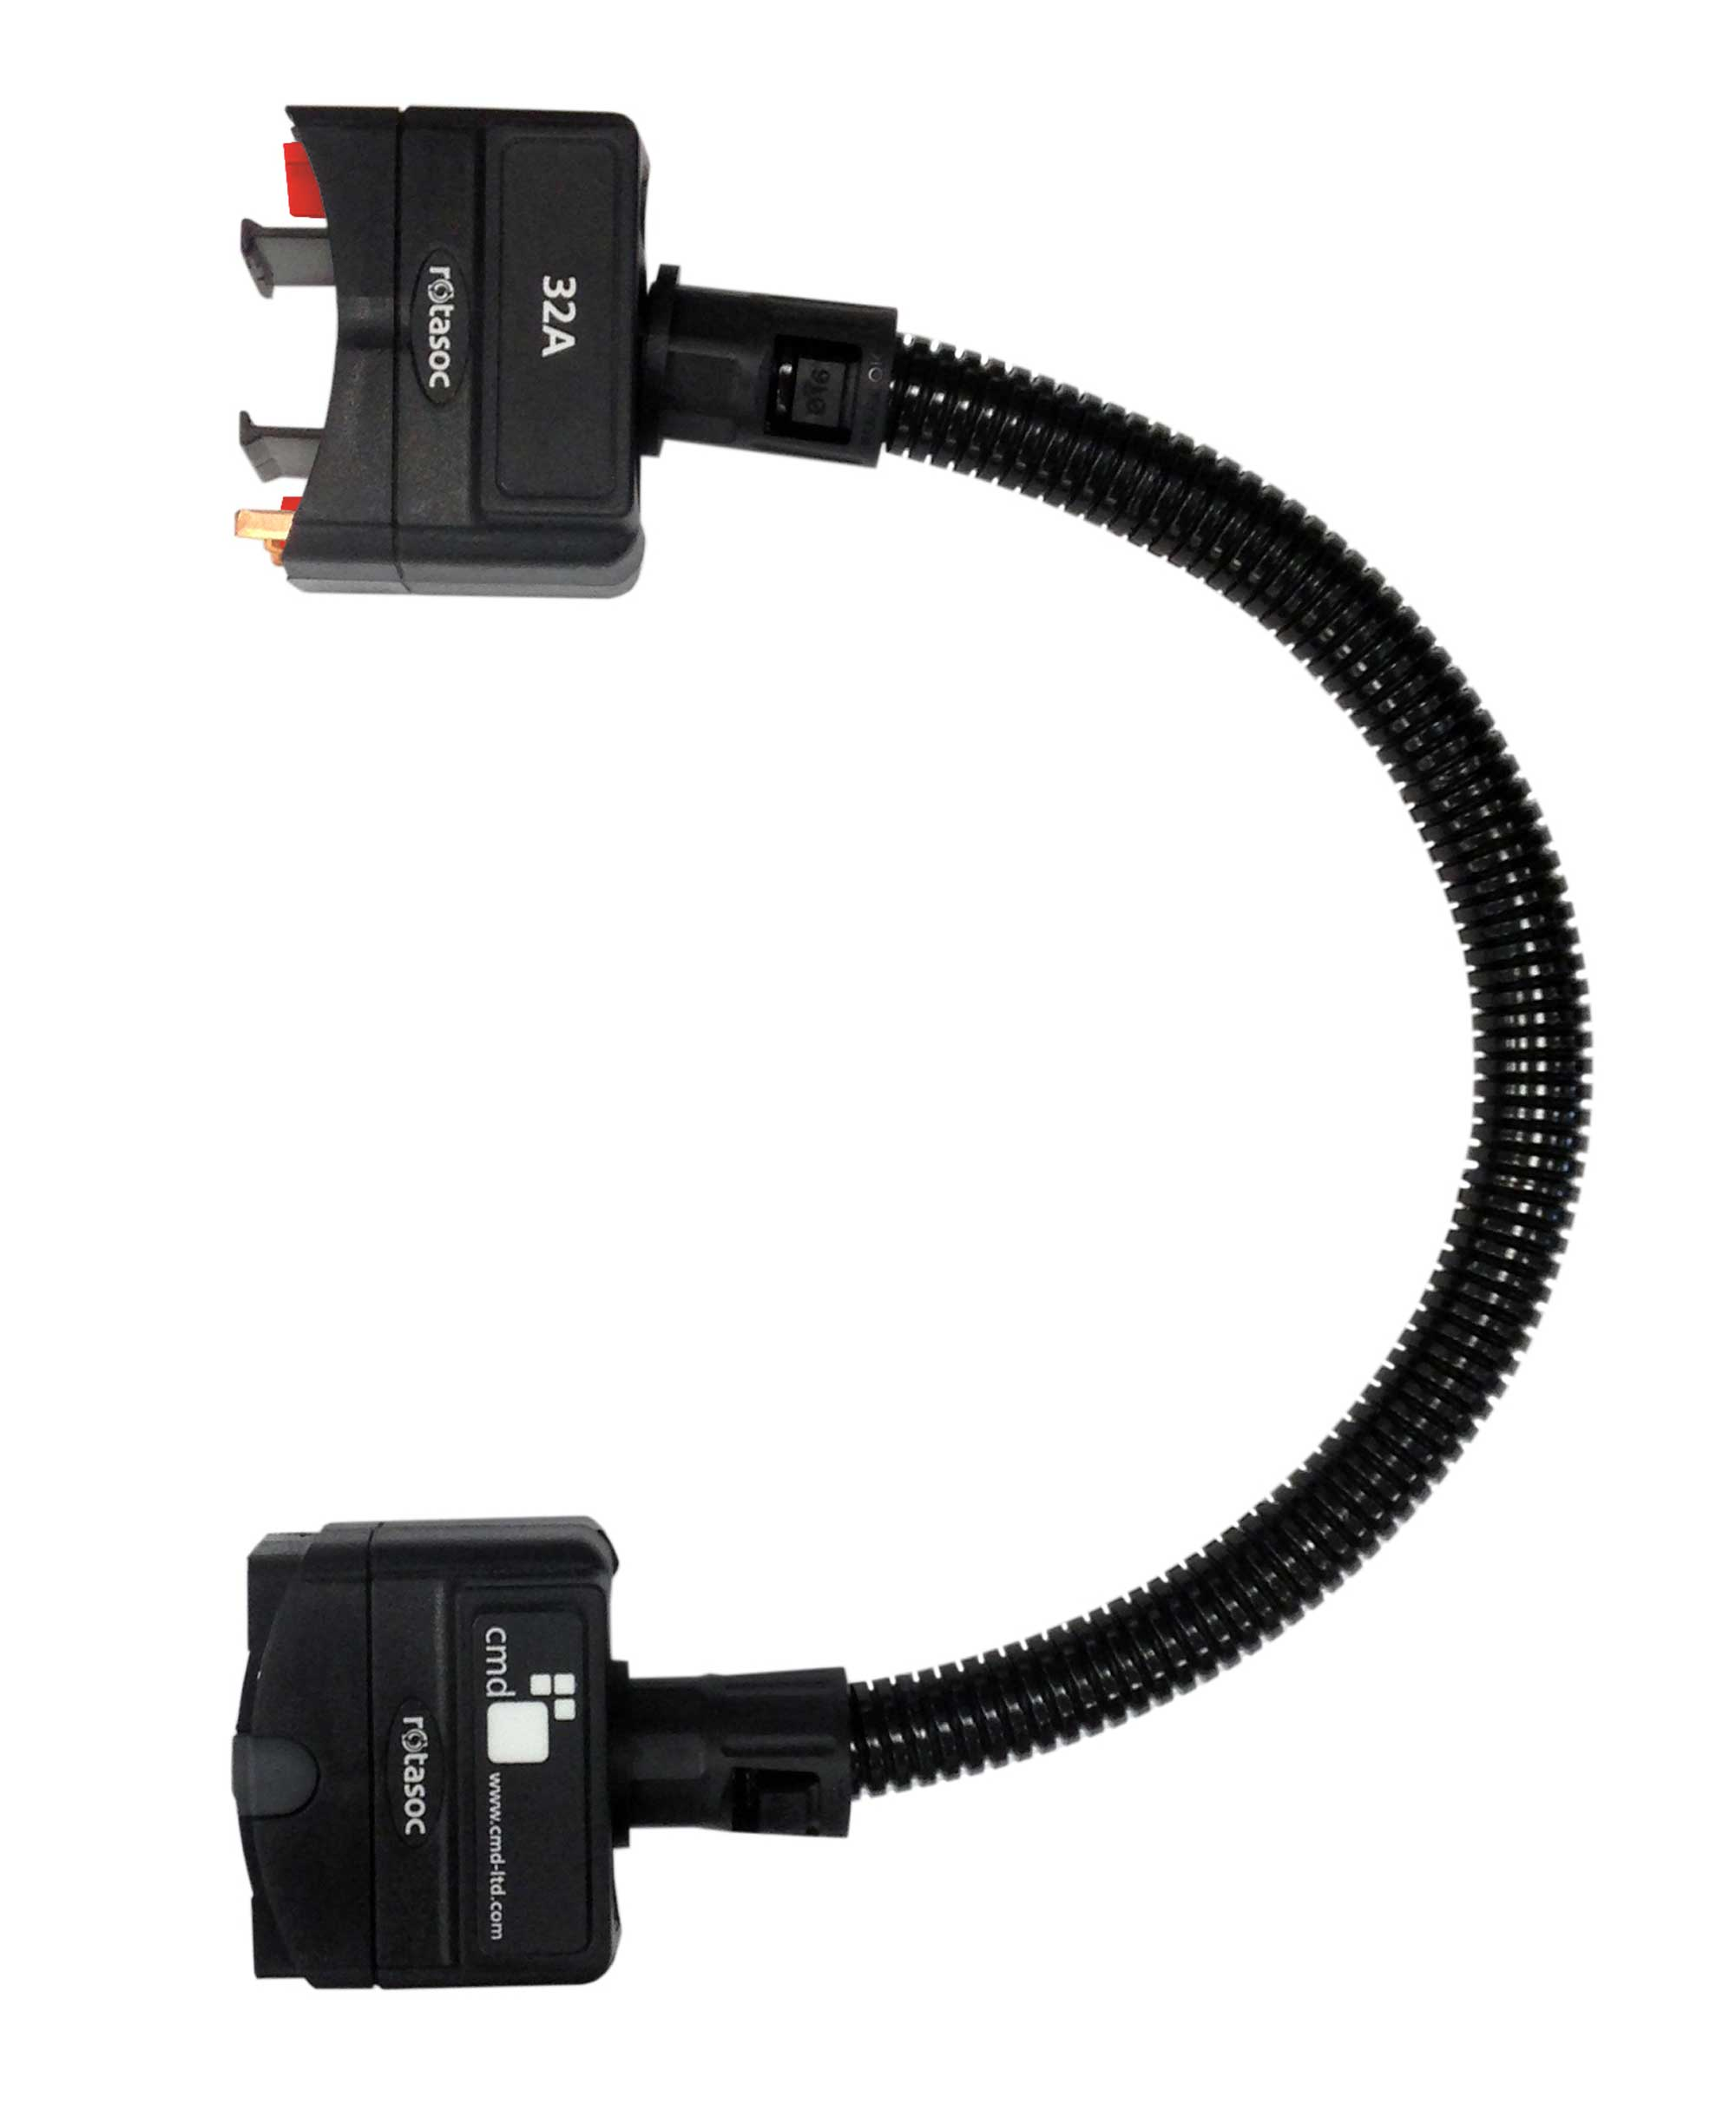 Rotasoc 32 Amp Interconnects – Clean Earth